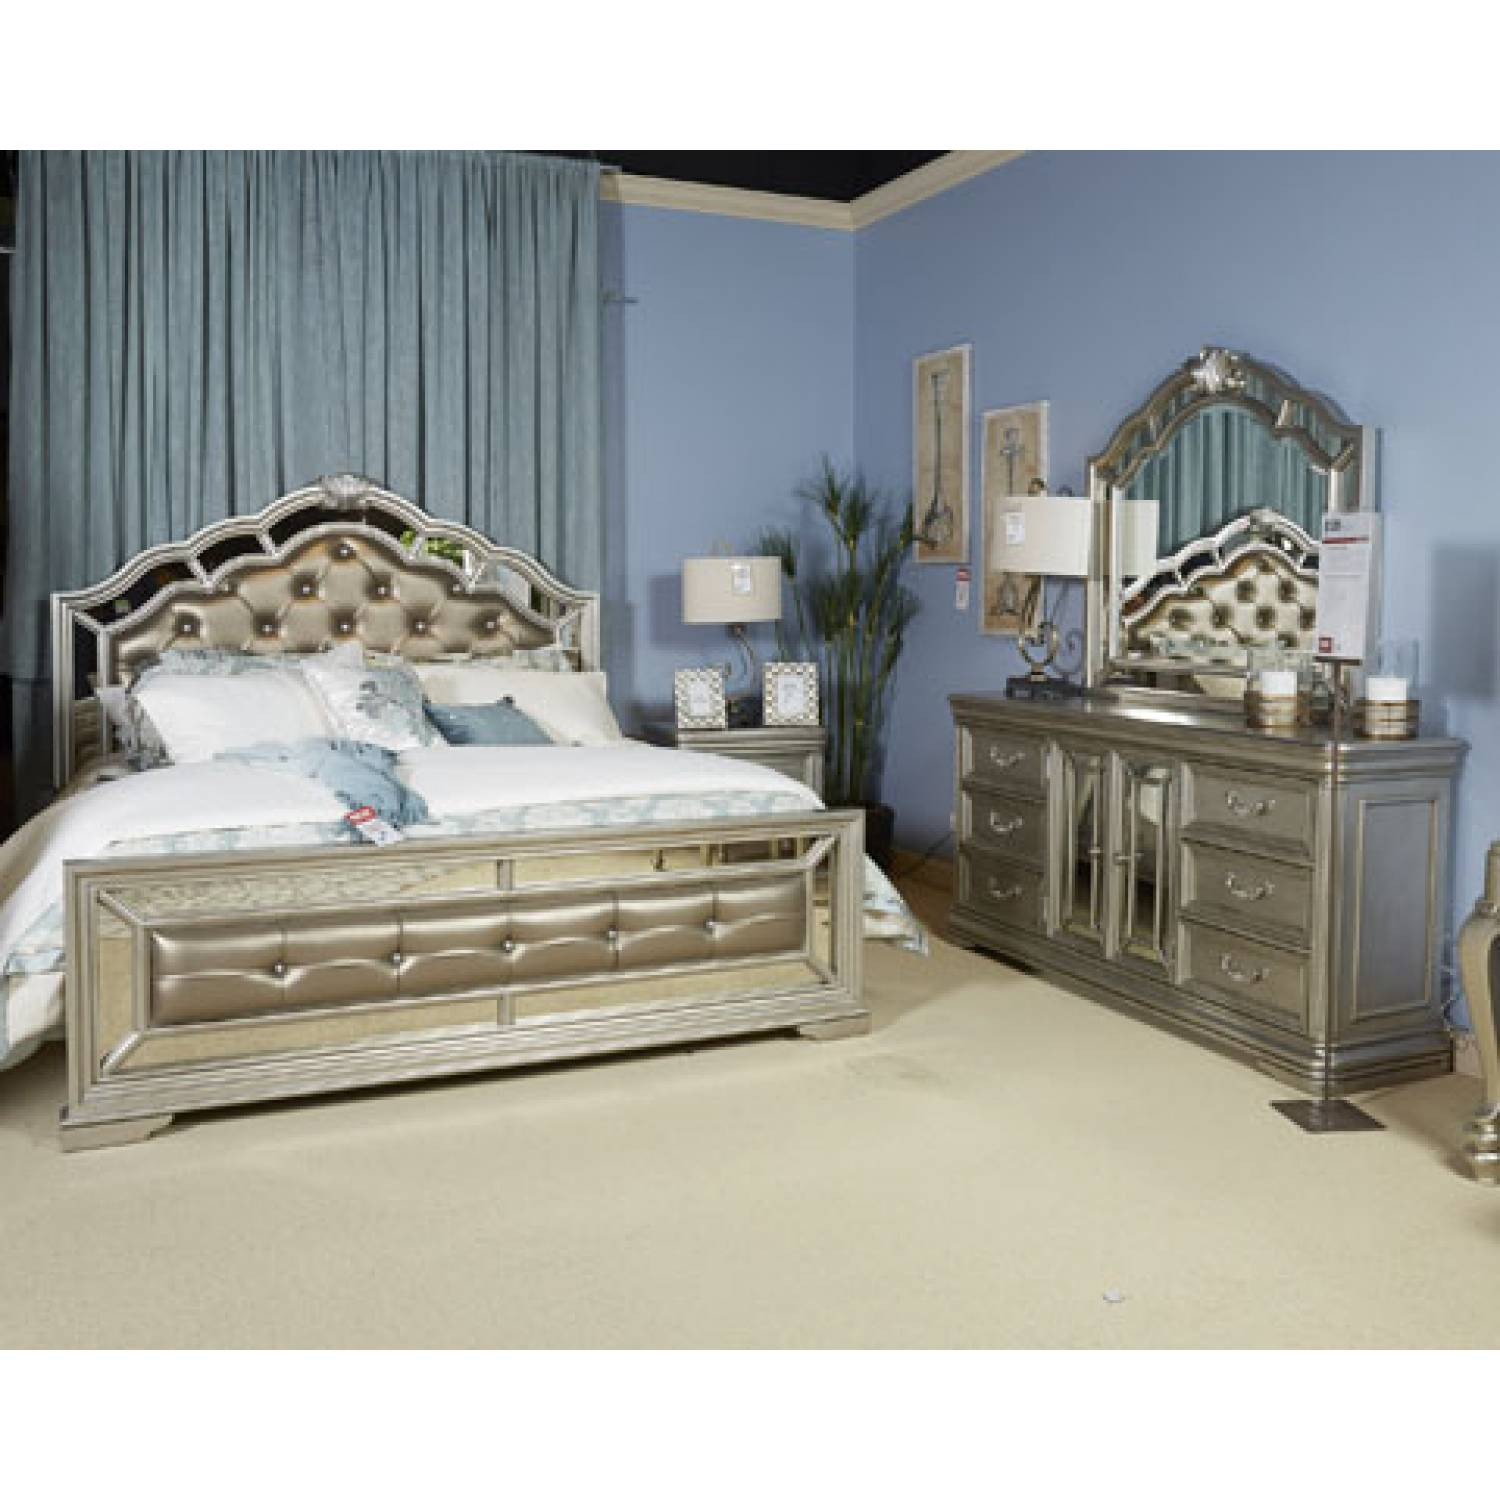 Wonderful Upholstered Bedroom Set Interior